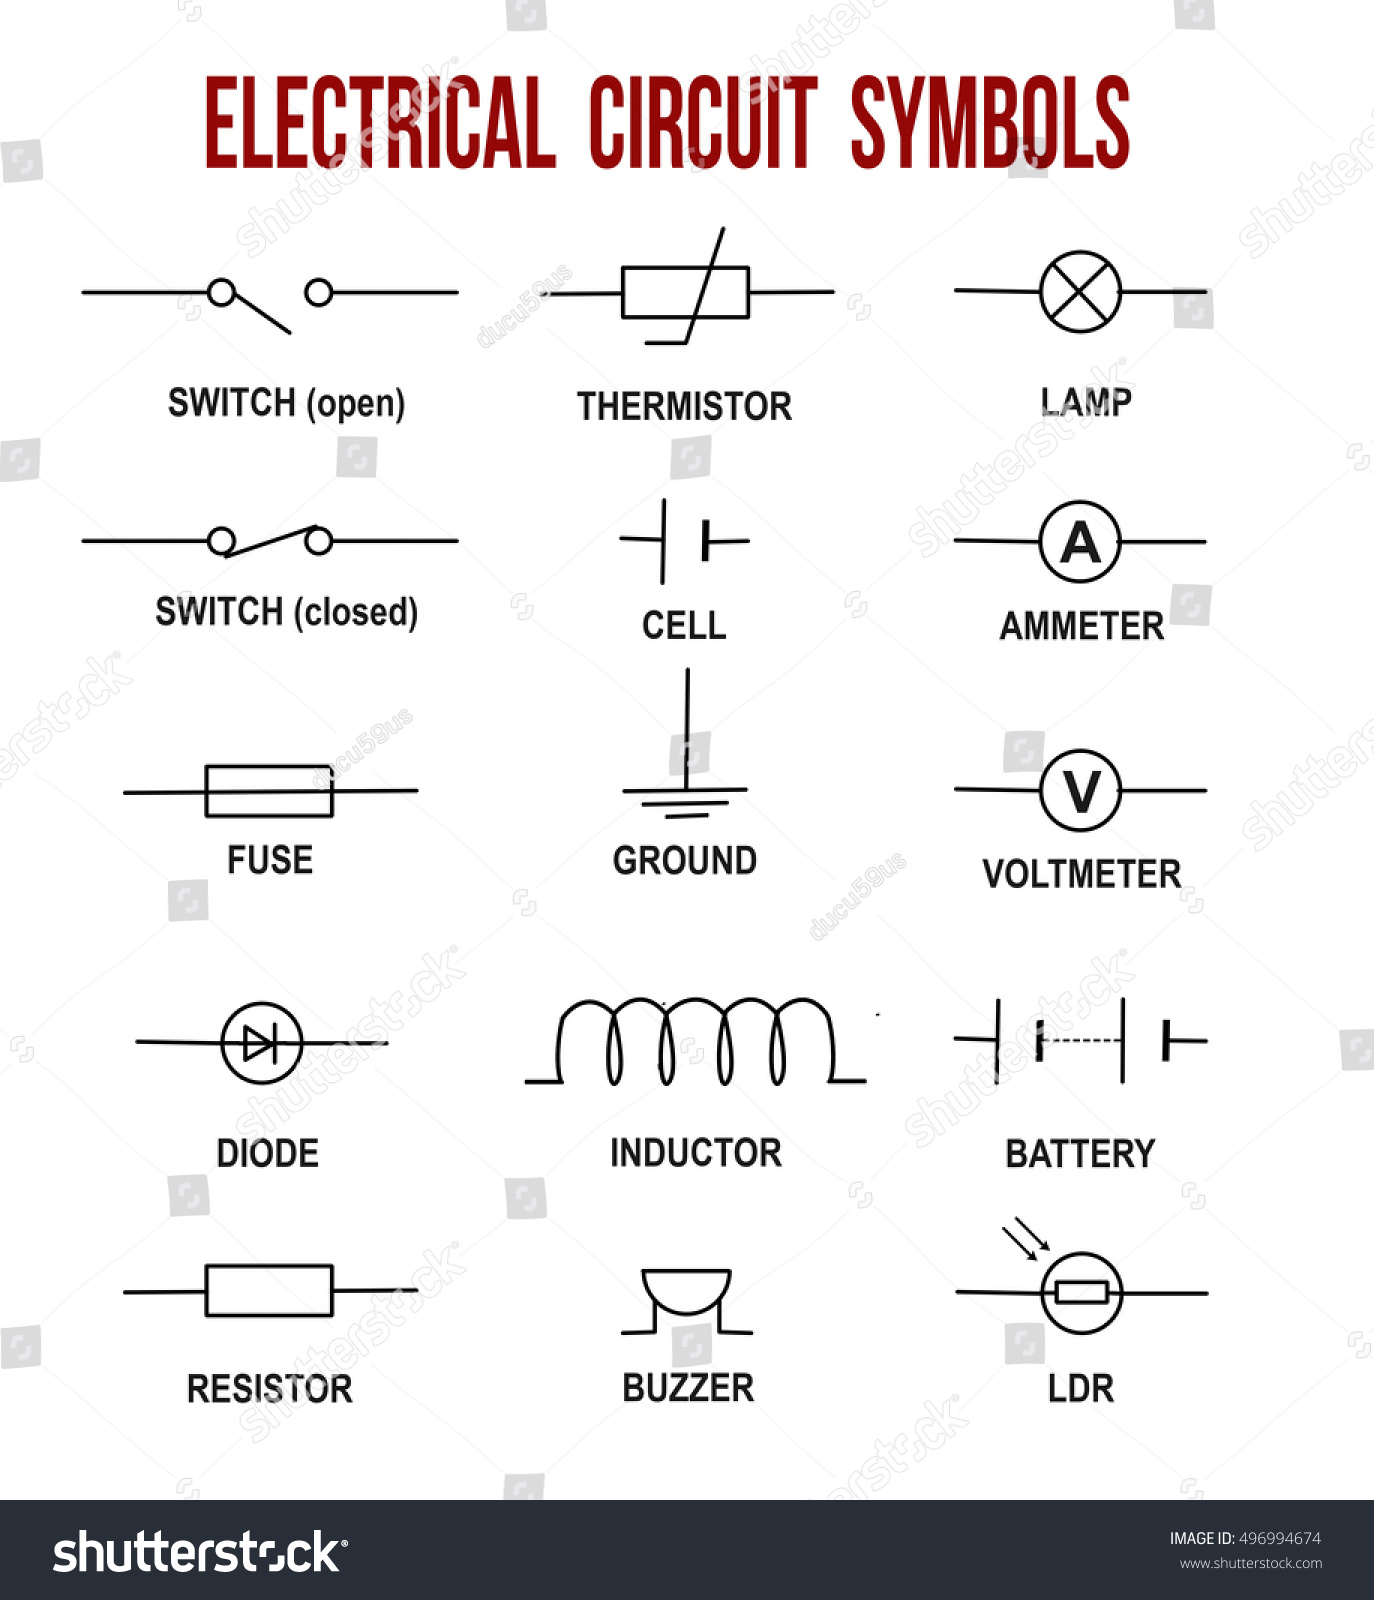 thermistor symbol electrical diagram lithium ion cell circuit symbols on white background stock